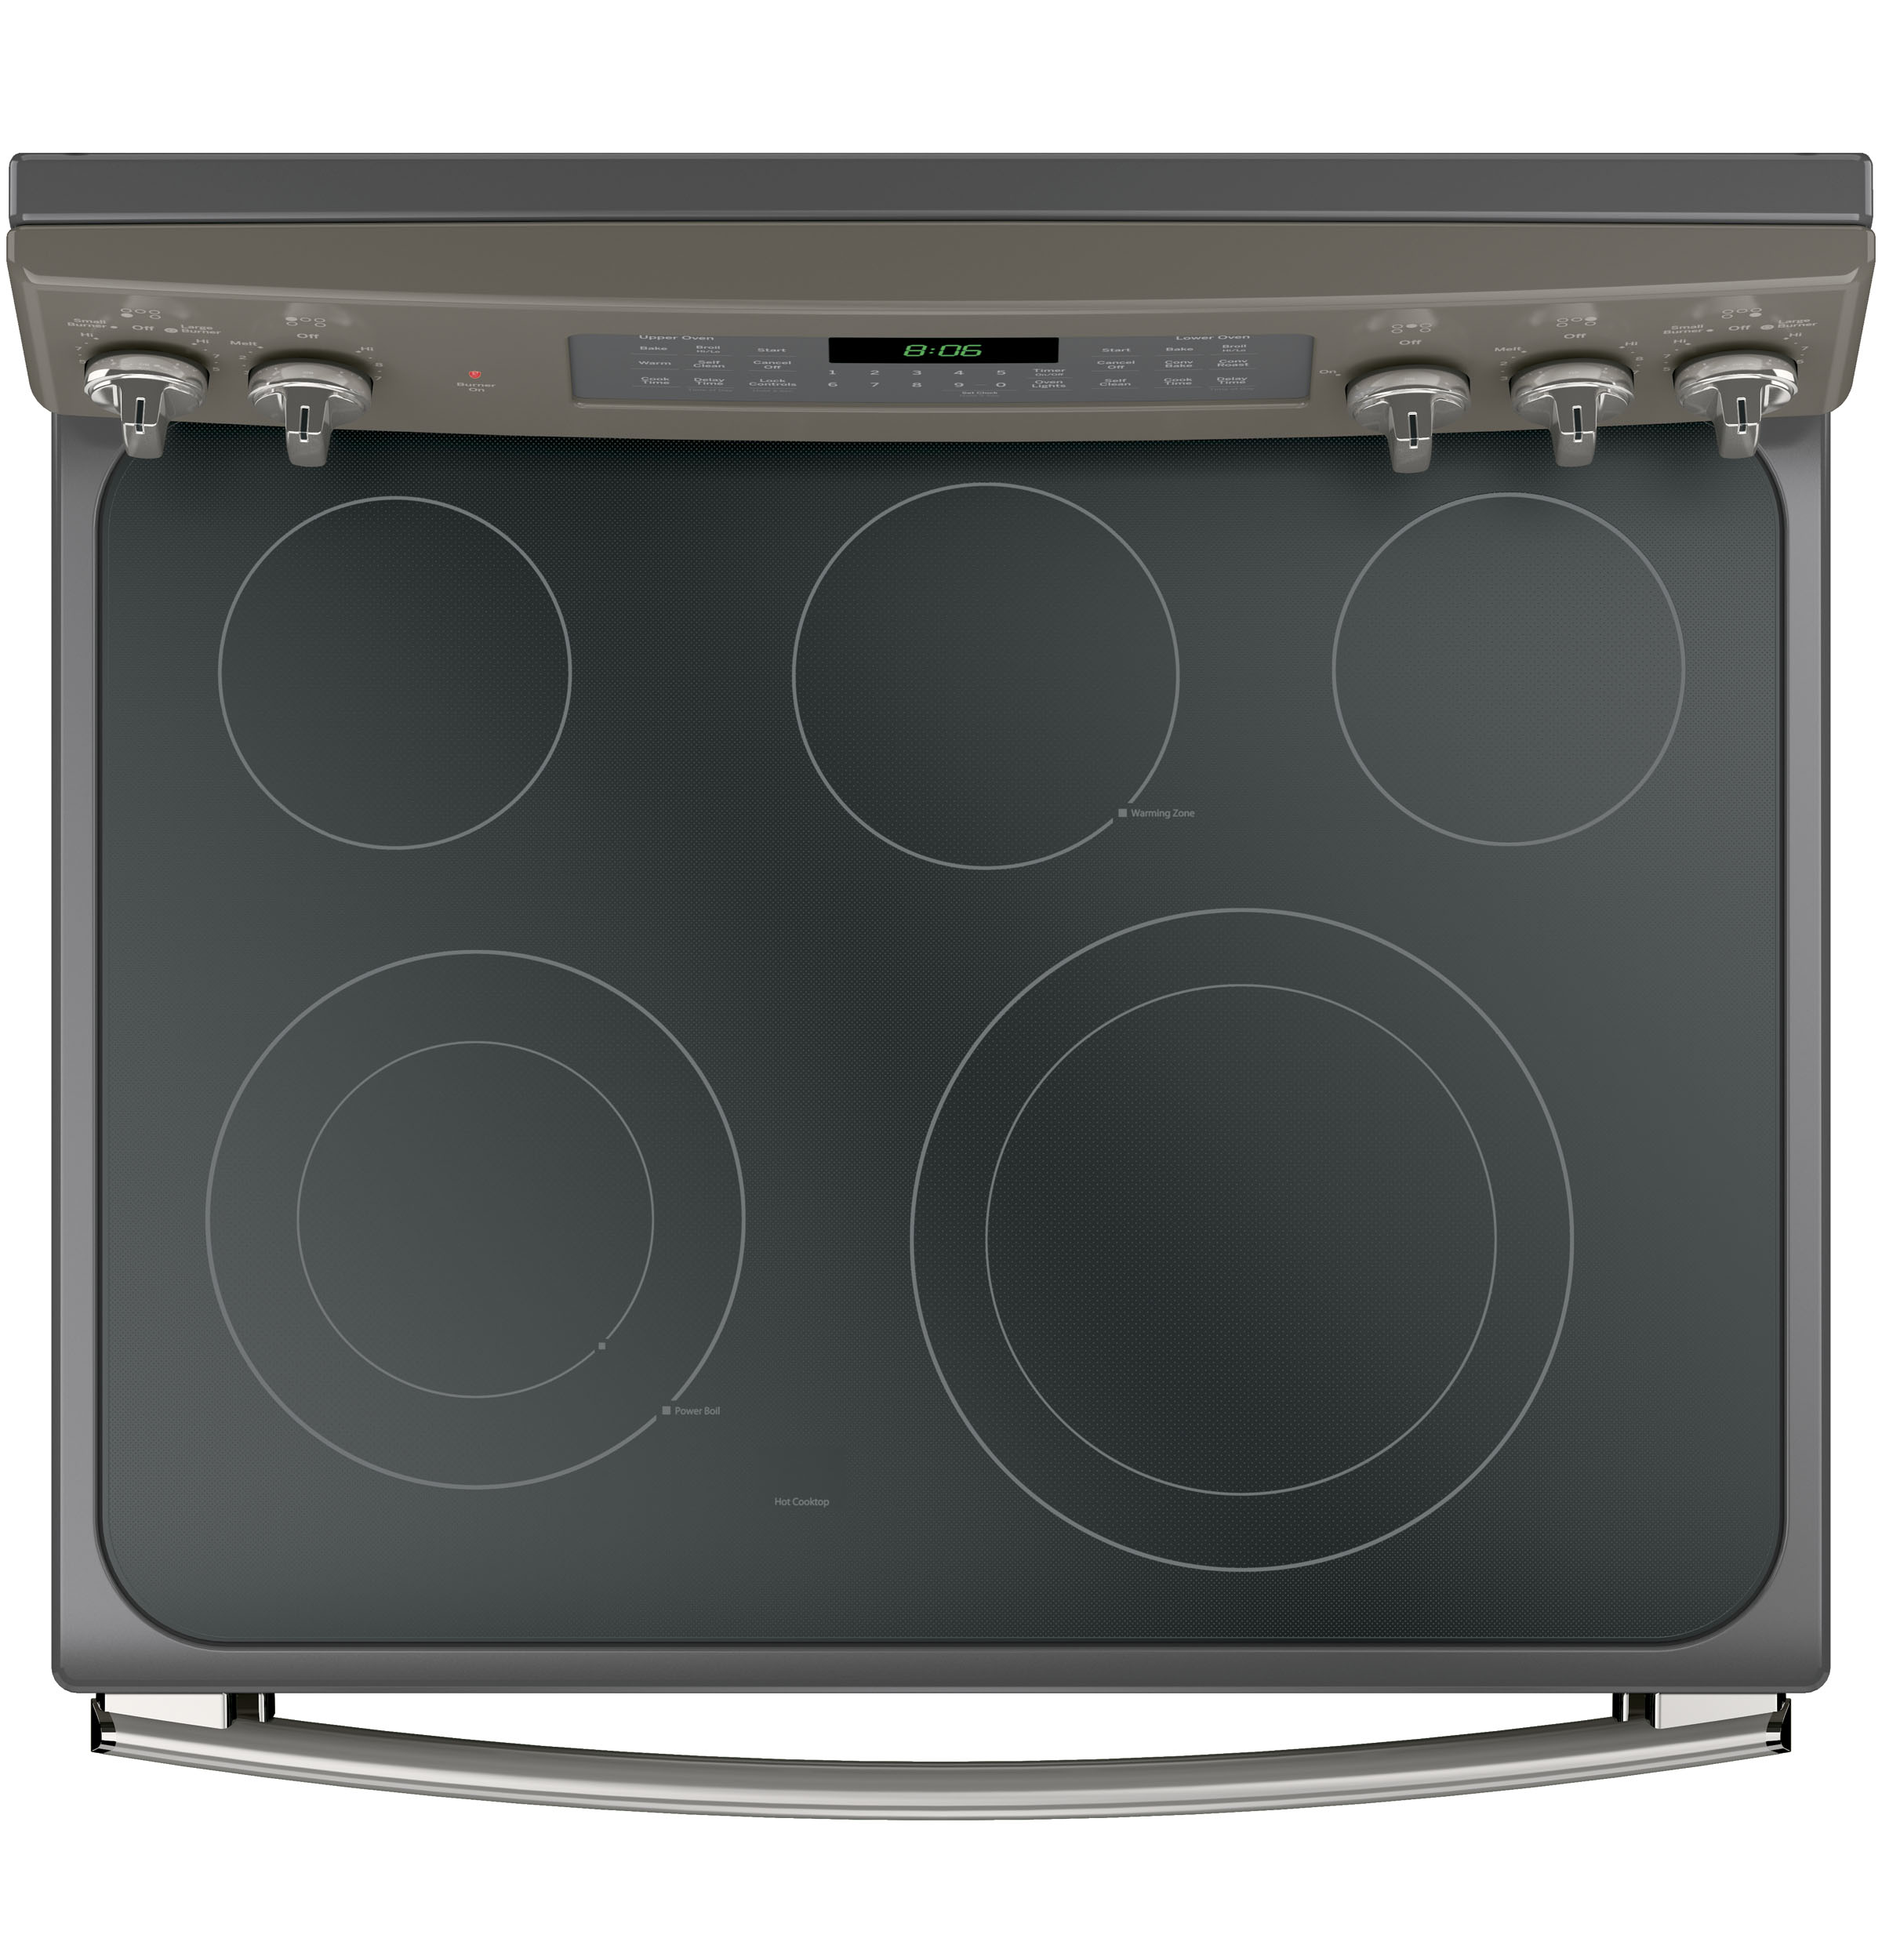 "Model: JB860EJES | GE GE® 30"" Free-Standing Electric Double Oven Convection Range"